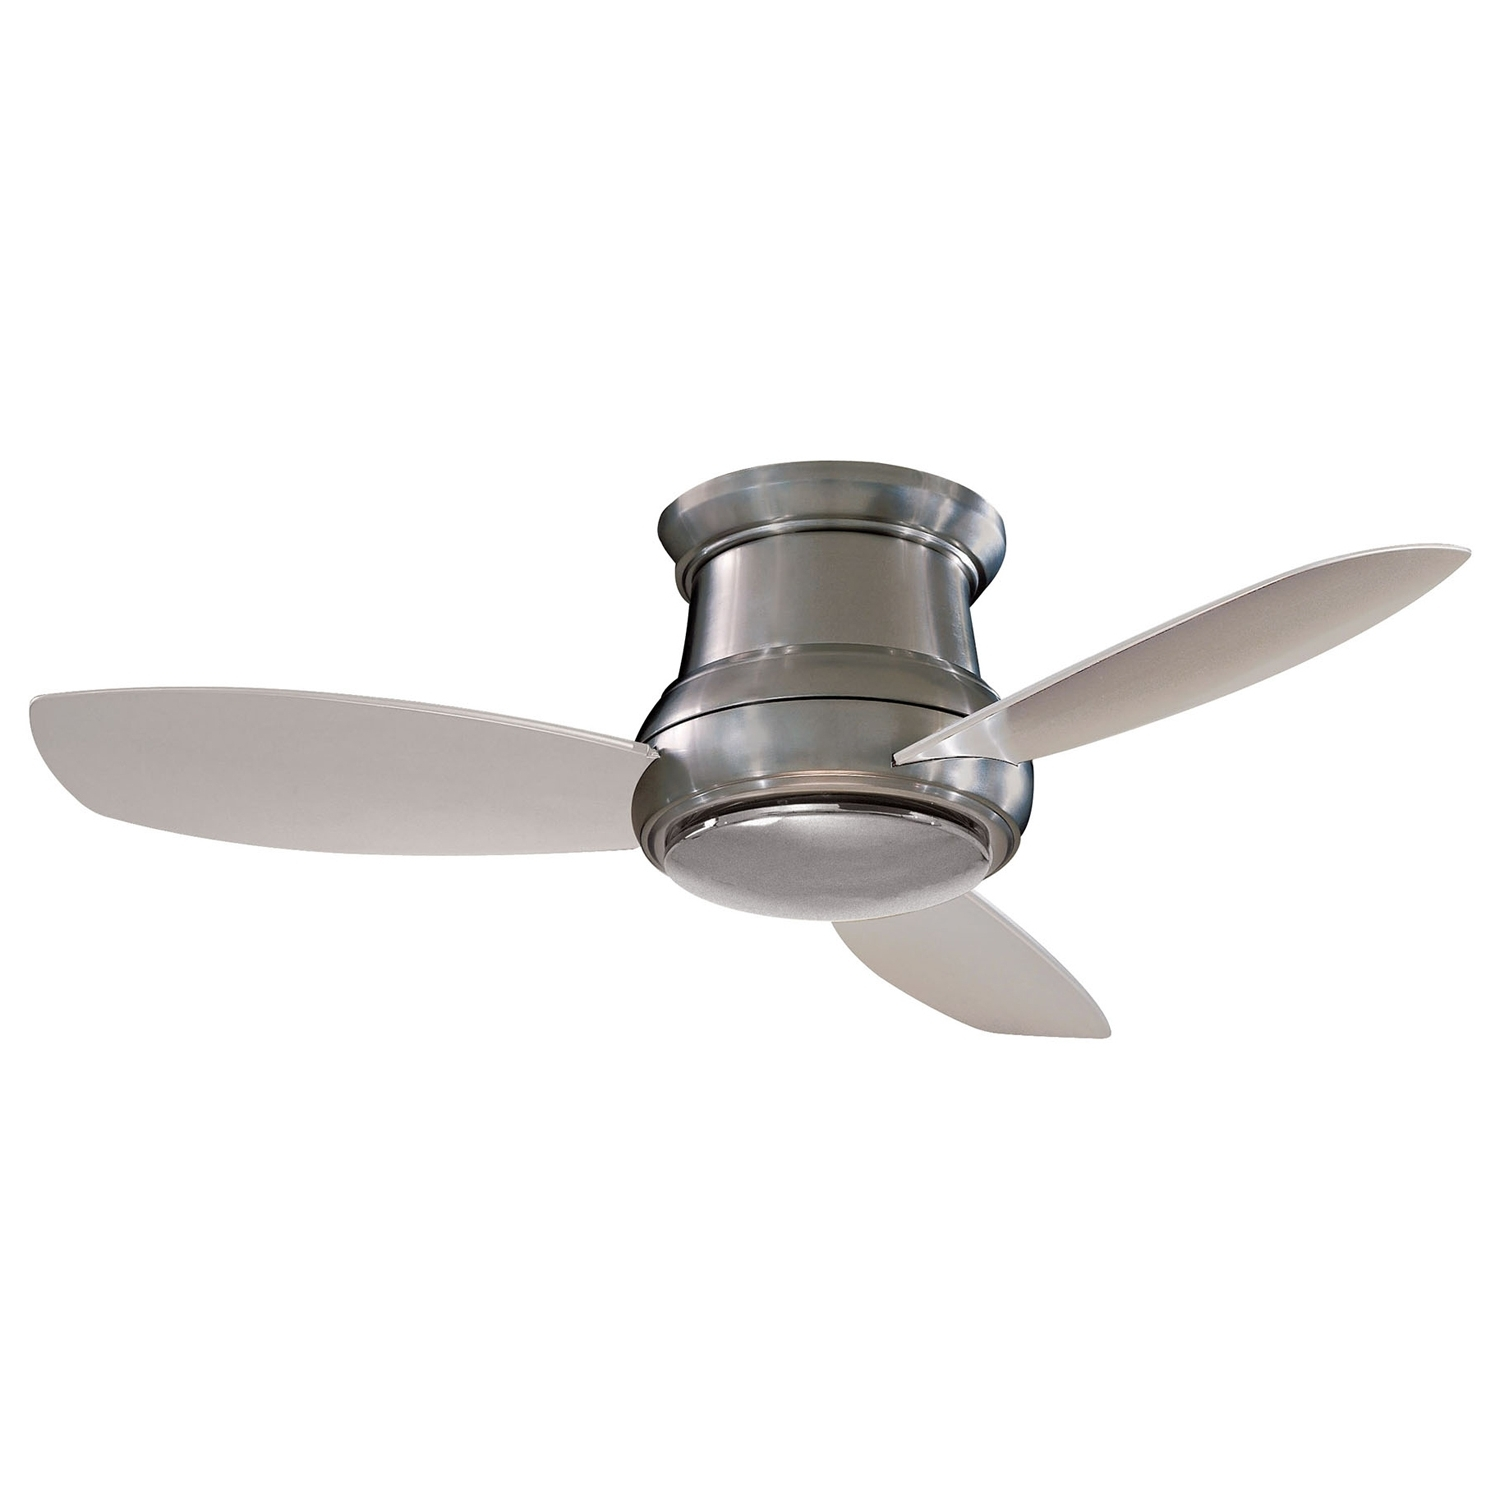 36 Inch Outdoor Ceiling Fans For Famous Ceiling Fan: Remarkable 36 Outdoor Ceiling Fan For Home 36 Inch Fans (View 3 of 20)